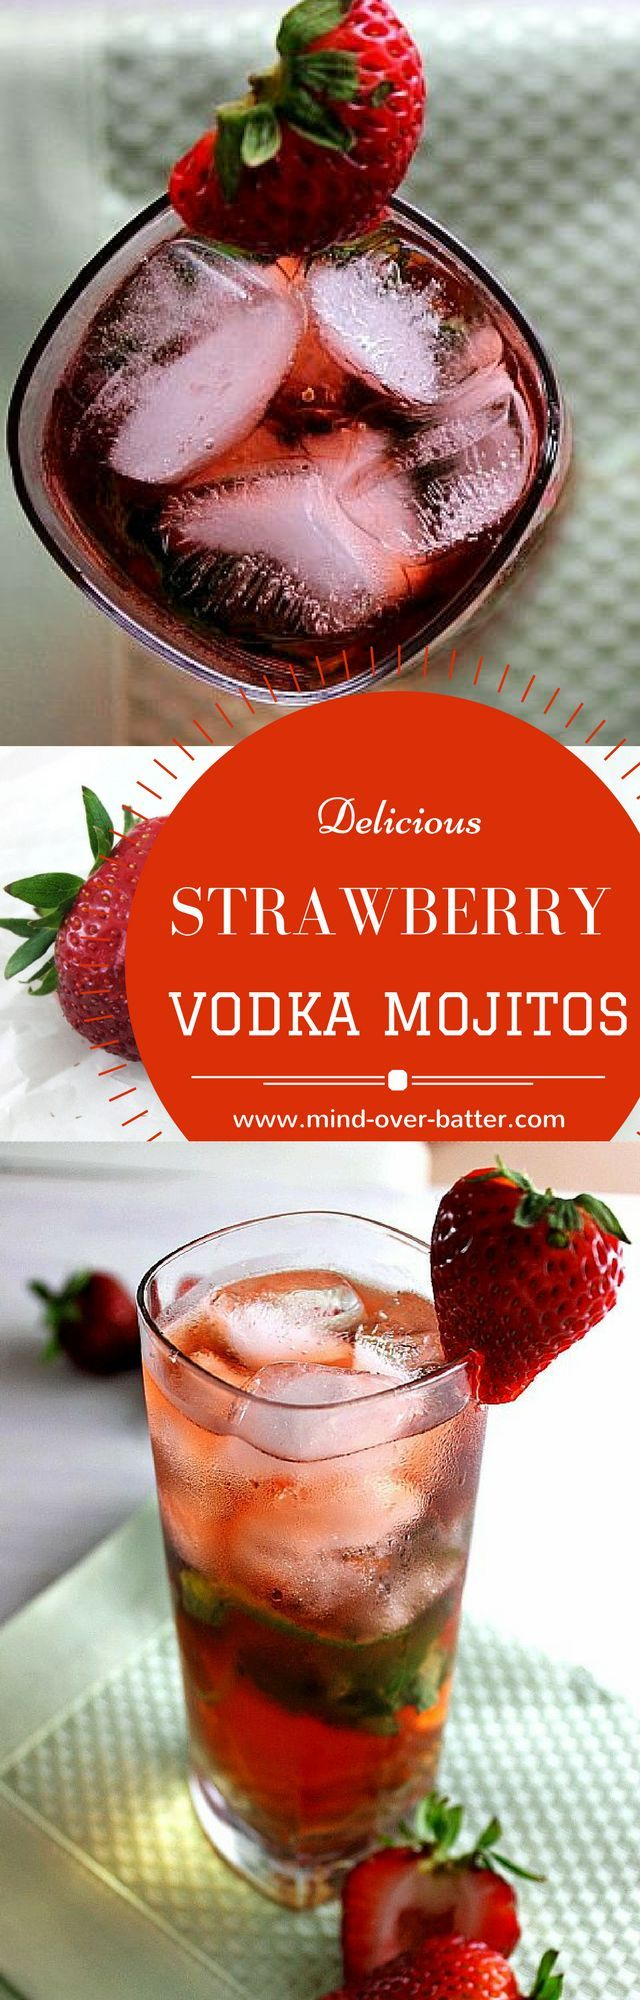 Strawberry Mint Mojitos with a homemade vodka! http://www.mind-over-batter.com